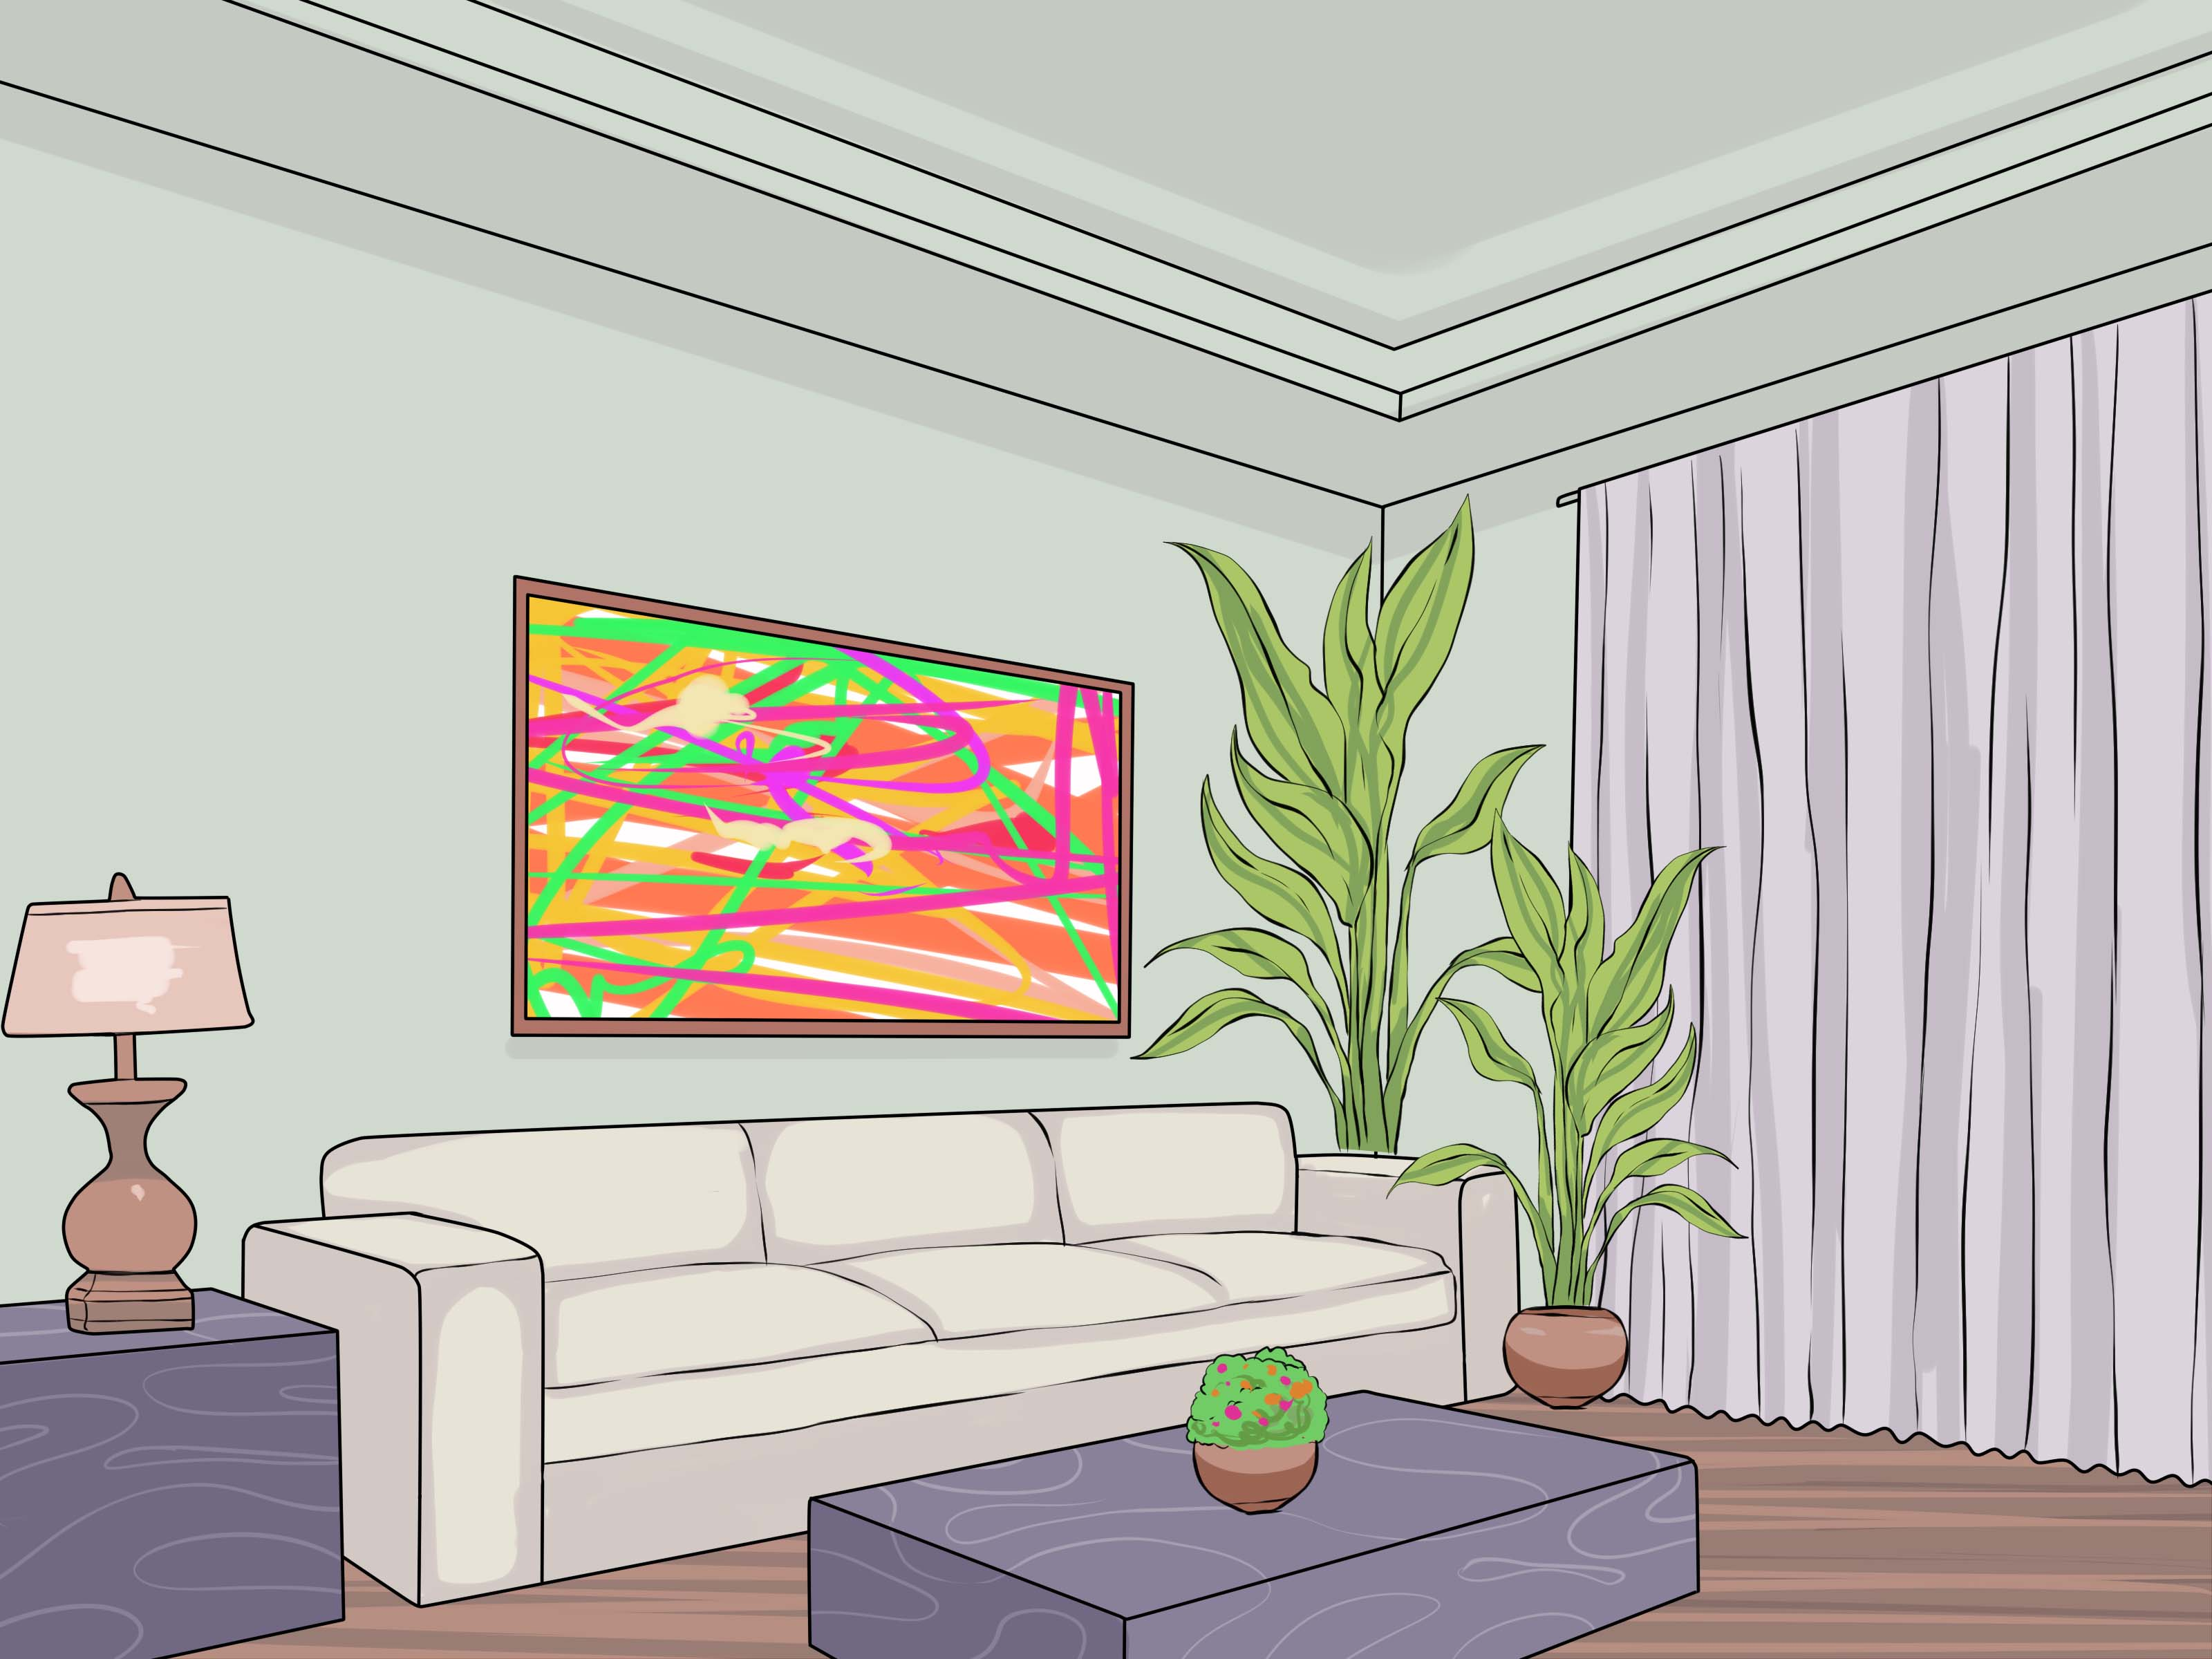 How to Design a Living Room 11 Steps with Pictures